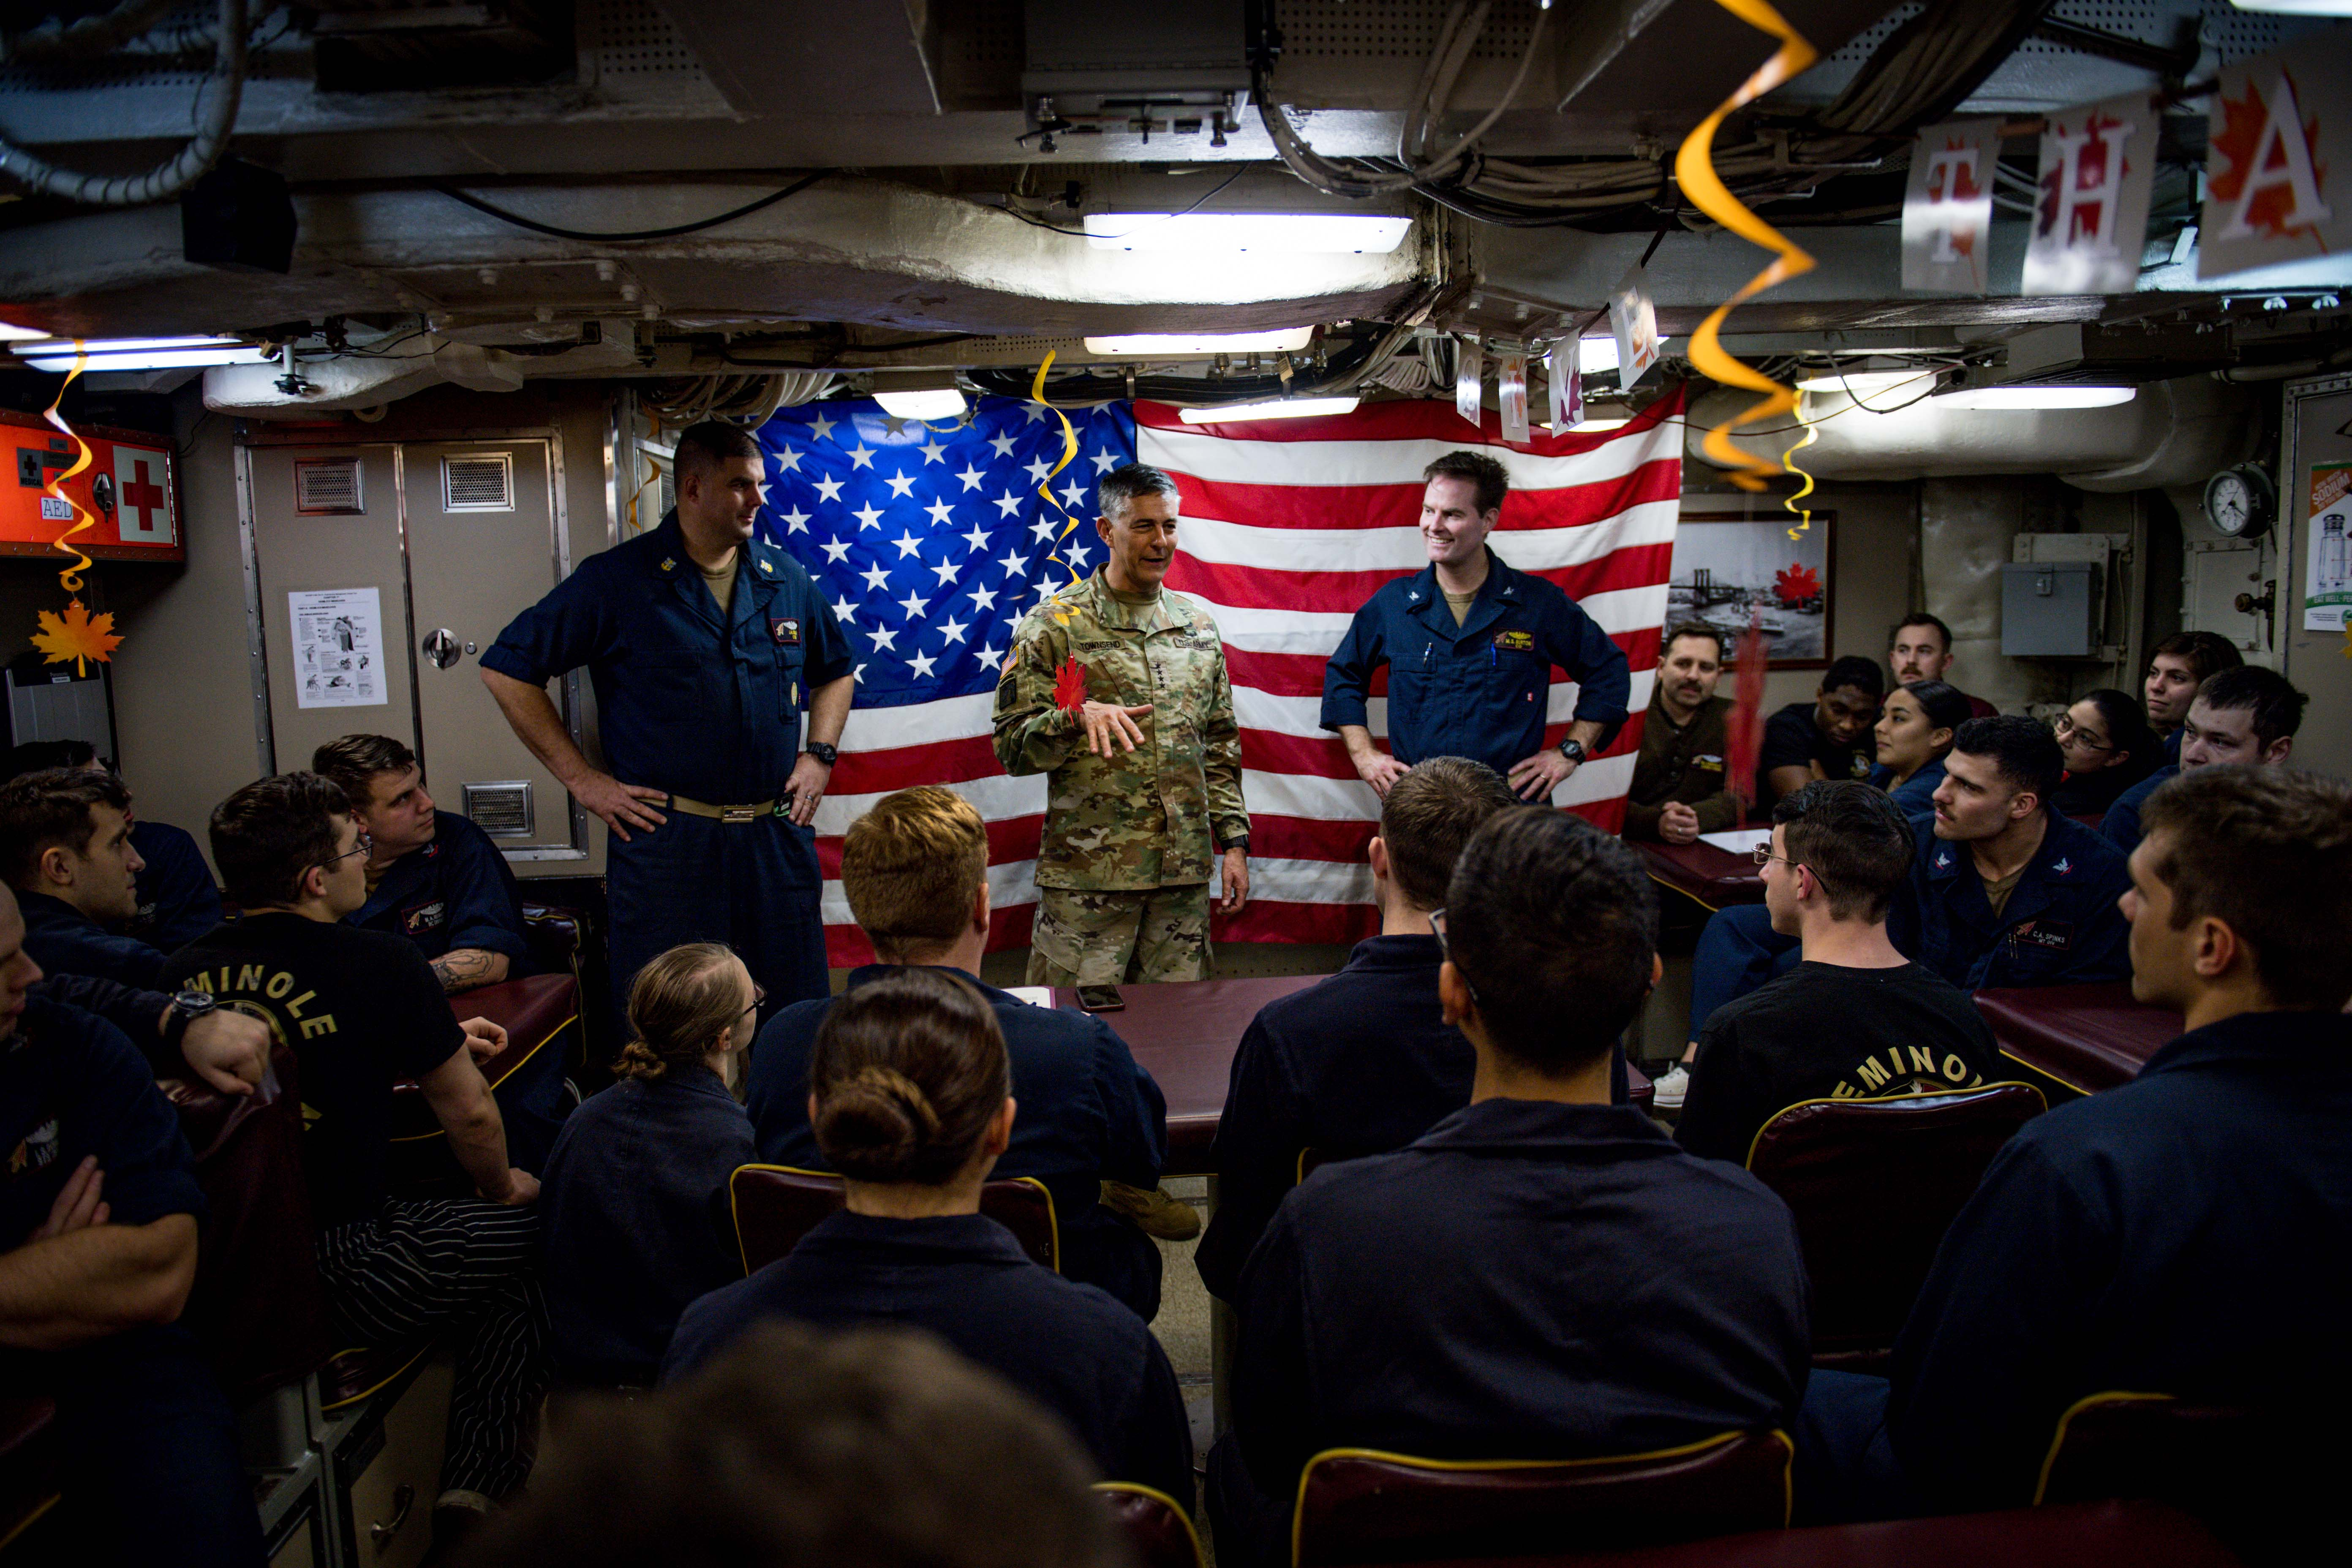 U.S. Army Gen. Stephen J. Townsend, commander, U.S. Africa Command (AFRICOM), center, speaks with the crew of the Ohio-class fleet guided-missile submarine USS Florida (SSGN 728) while underway in the Mediterranean Sea Nov. 25, 2019. AFRICOM, a full-spectrum combatant command, is one of the six U.S. Defense Department's geographic combatant commands and is responsible for all DoD operations, exercises, and security cooperation on the African continent, its island nations, and surrounding waters. (U.S. Navy photo by Mass Communication Specialist 2nd Class Jonathan Nelson)